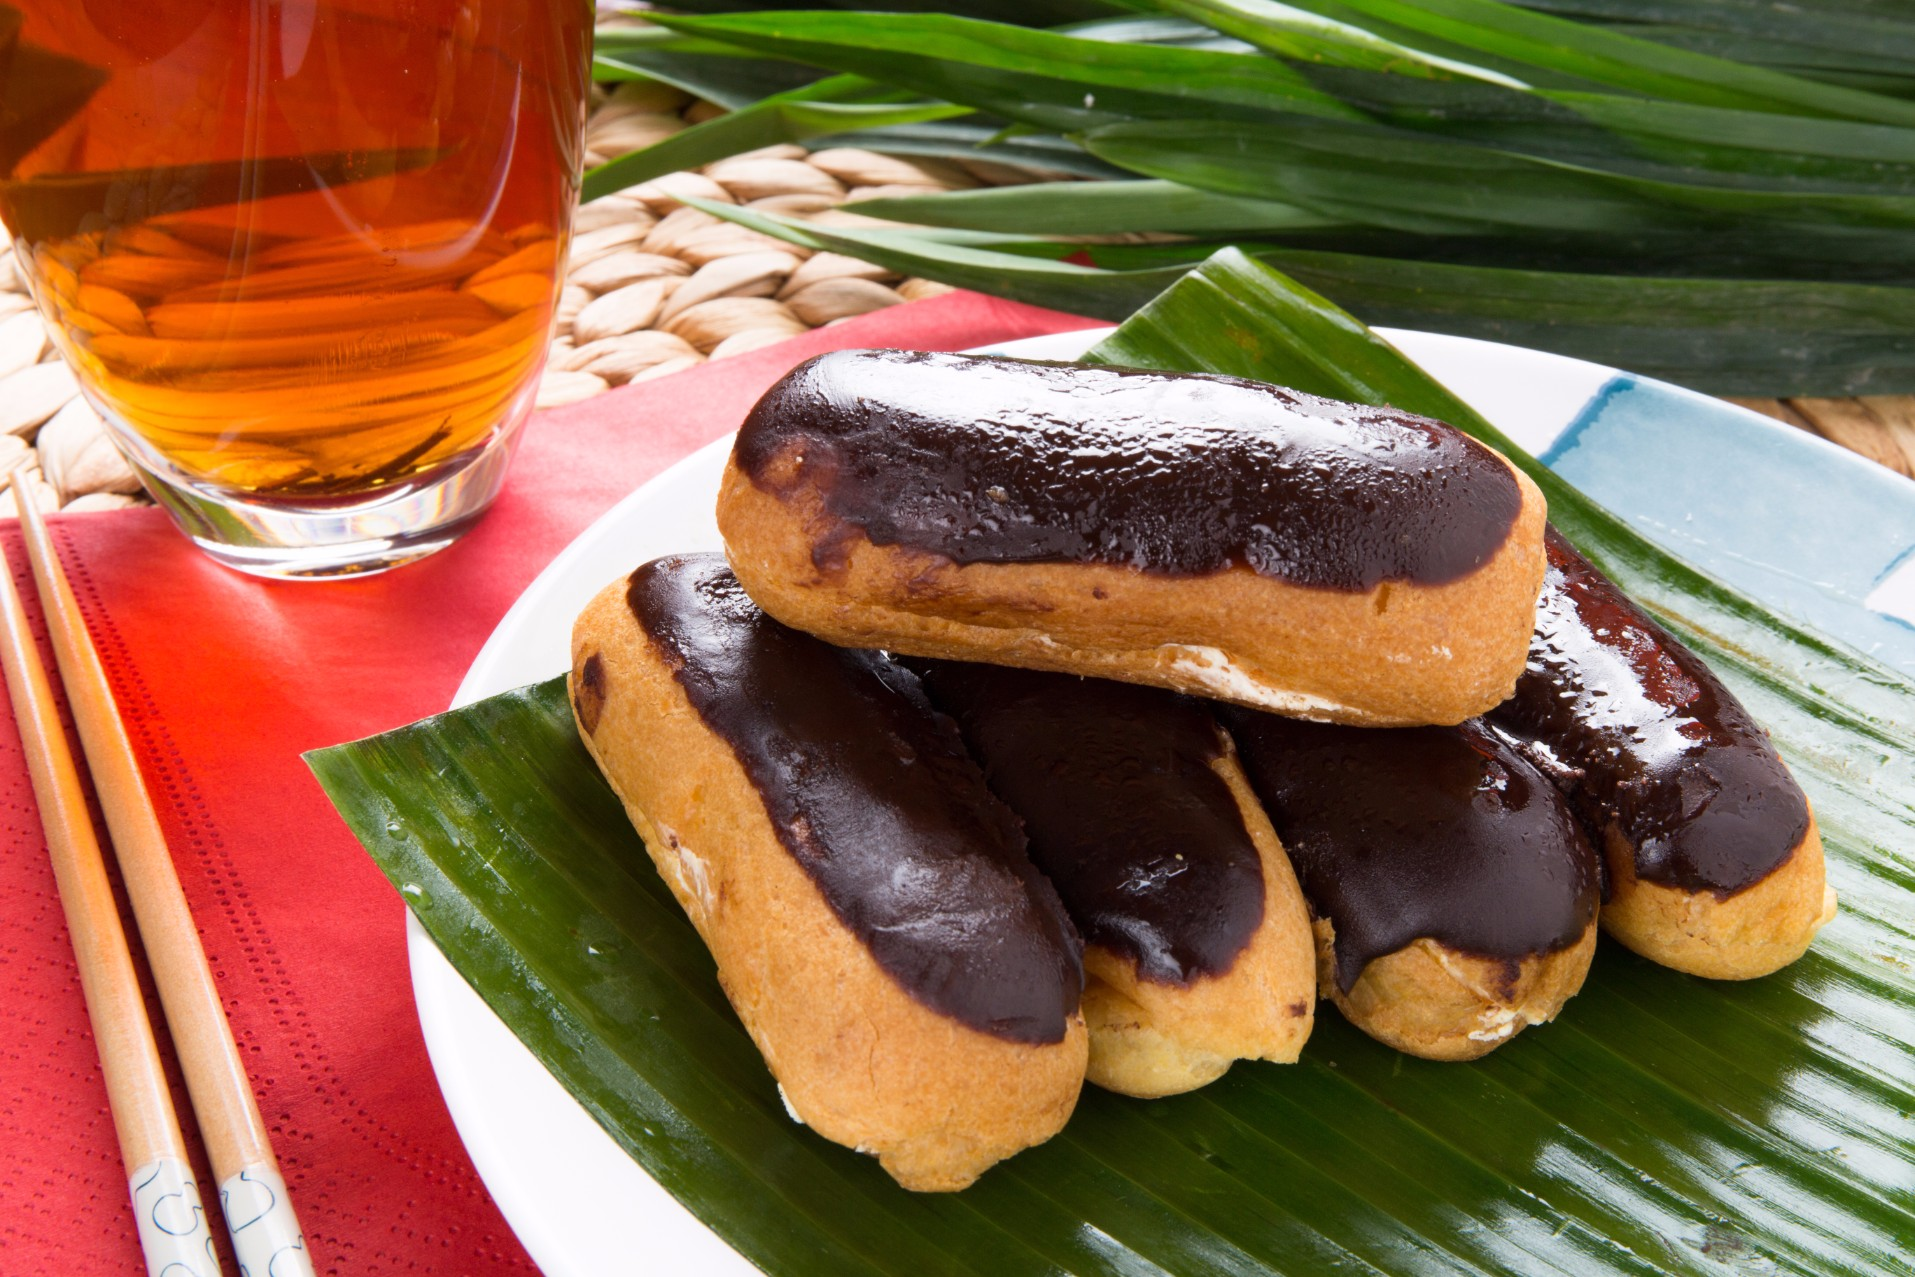 Chocolate Éclair (Sold in 10s')